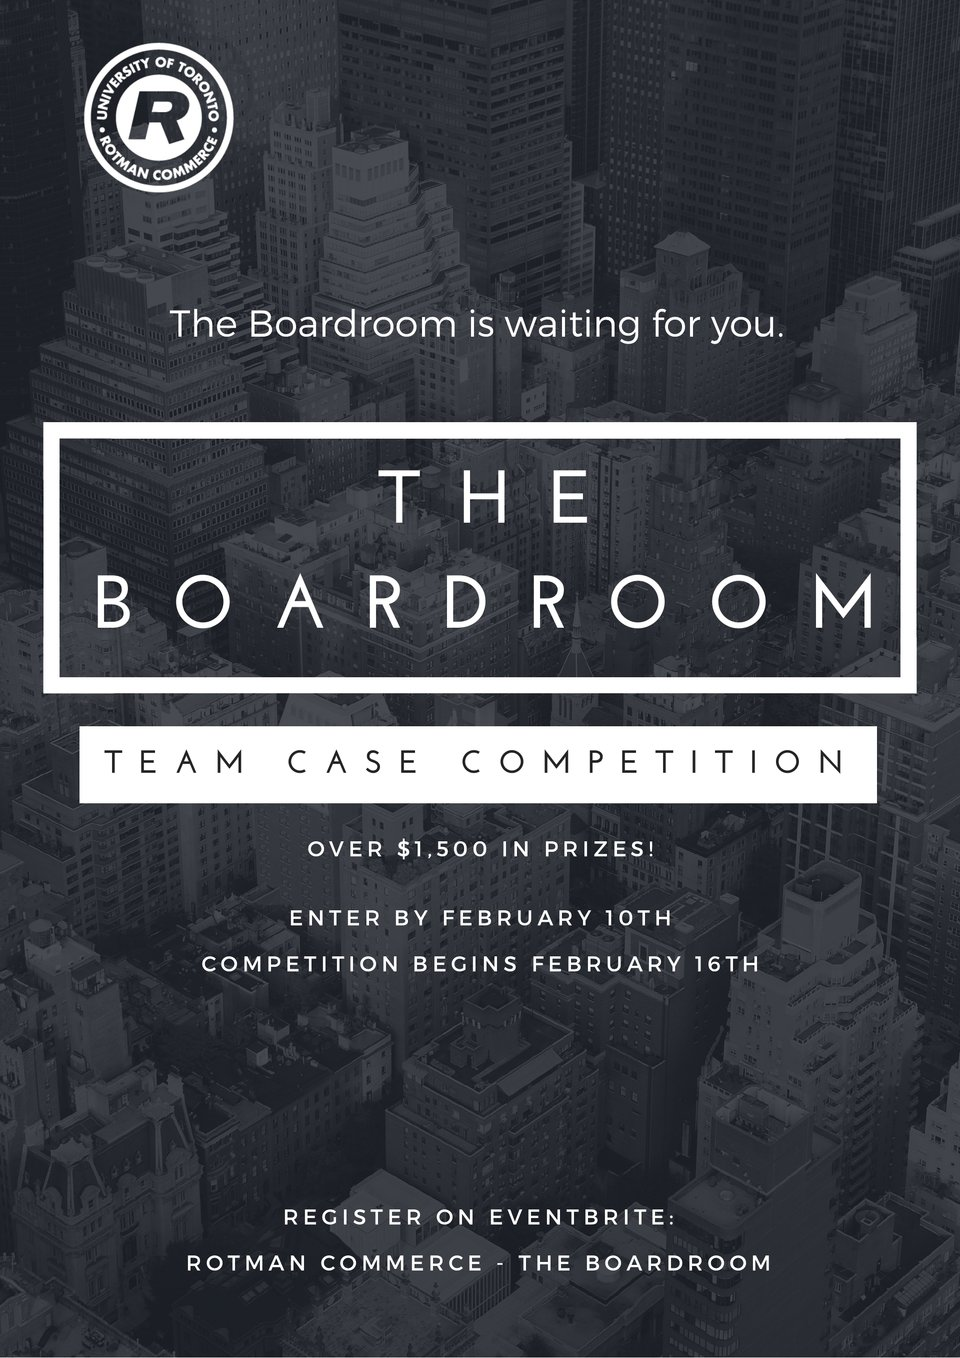 Rotman Commerce - The Boardroom Poster